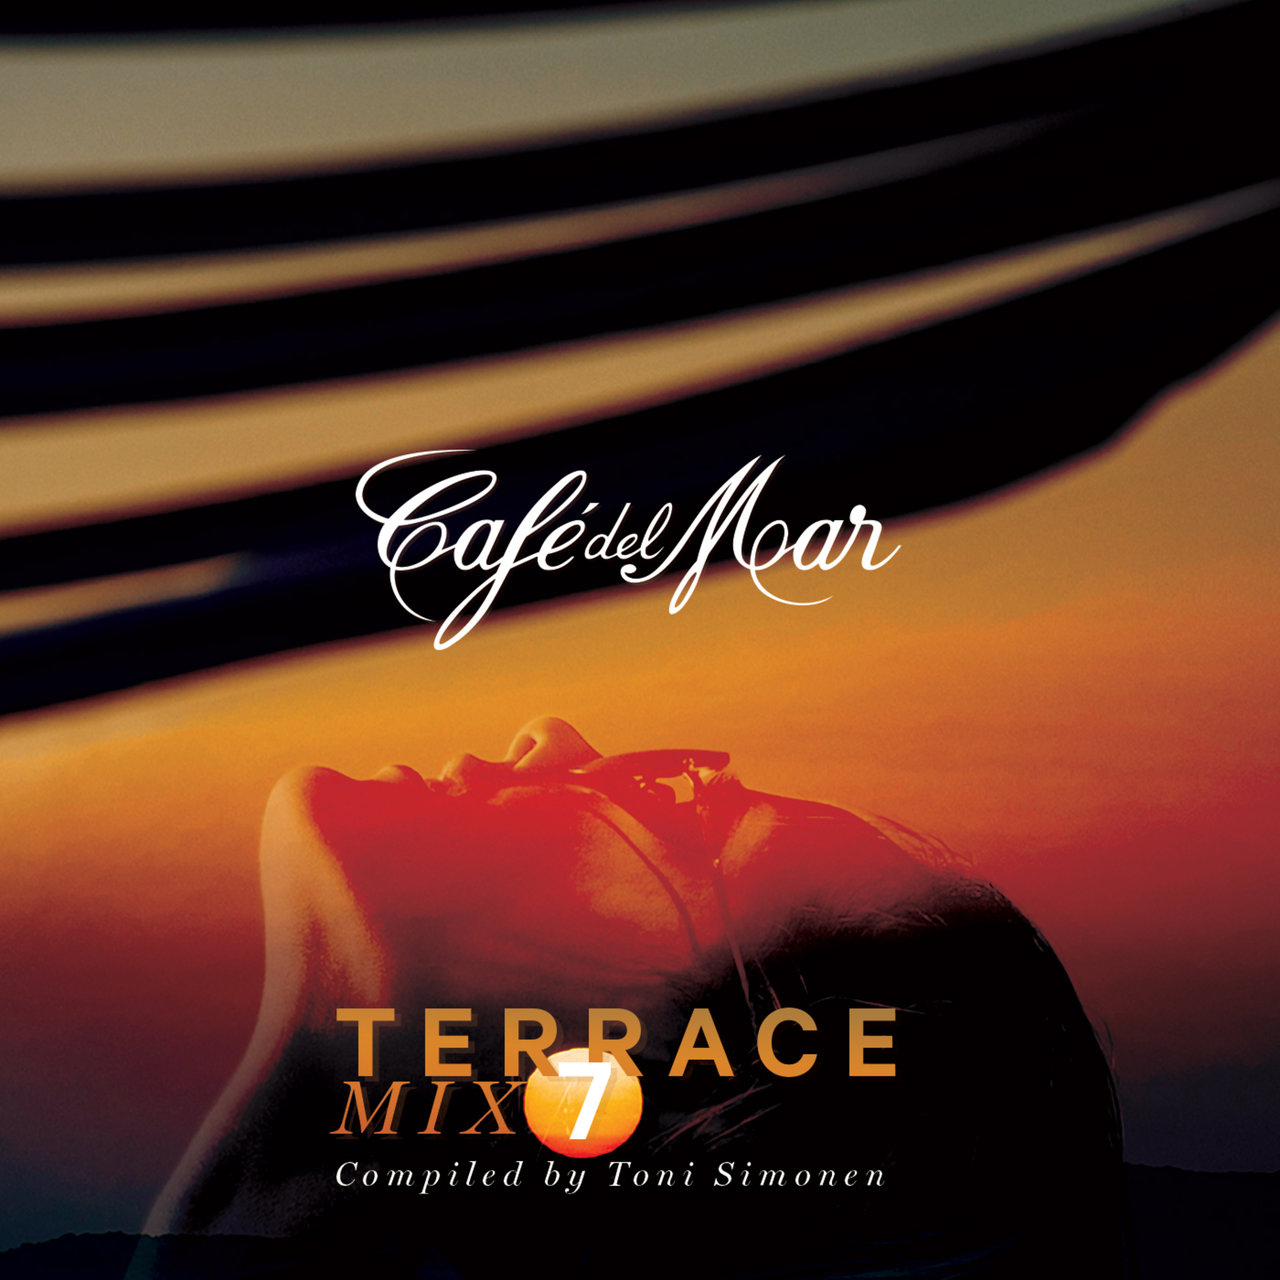 Café del Mar Terrace Mix 7